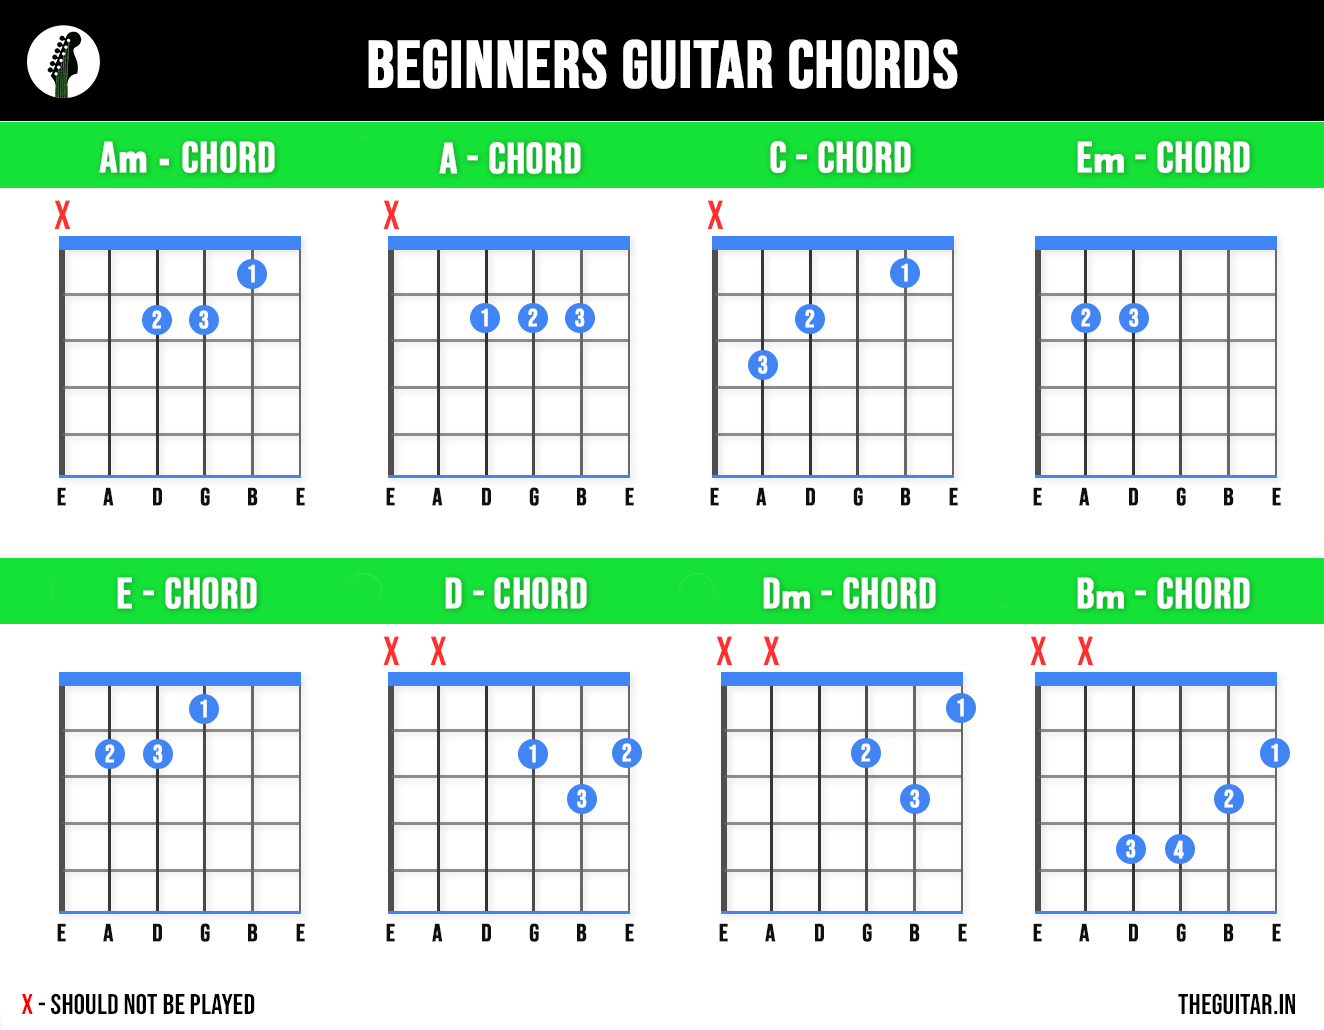 Beginners Basic Guitar Chords TheGuitar - Learn These 11 Basic Guitar Chords To Play Any Song - Beginners Guide